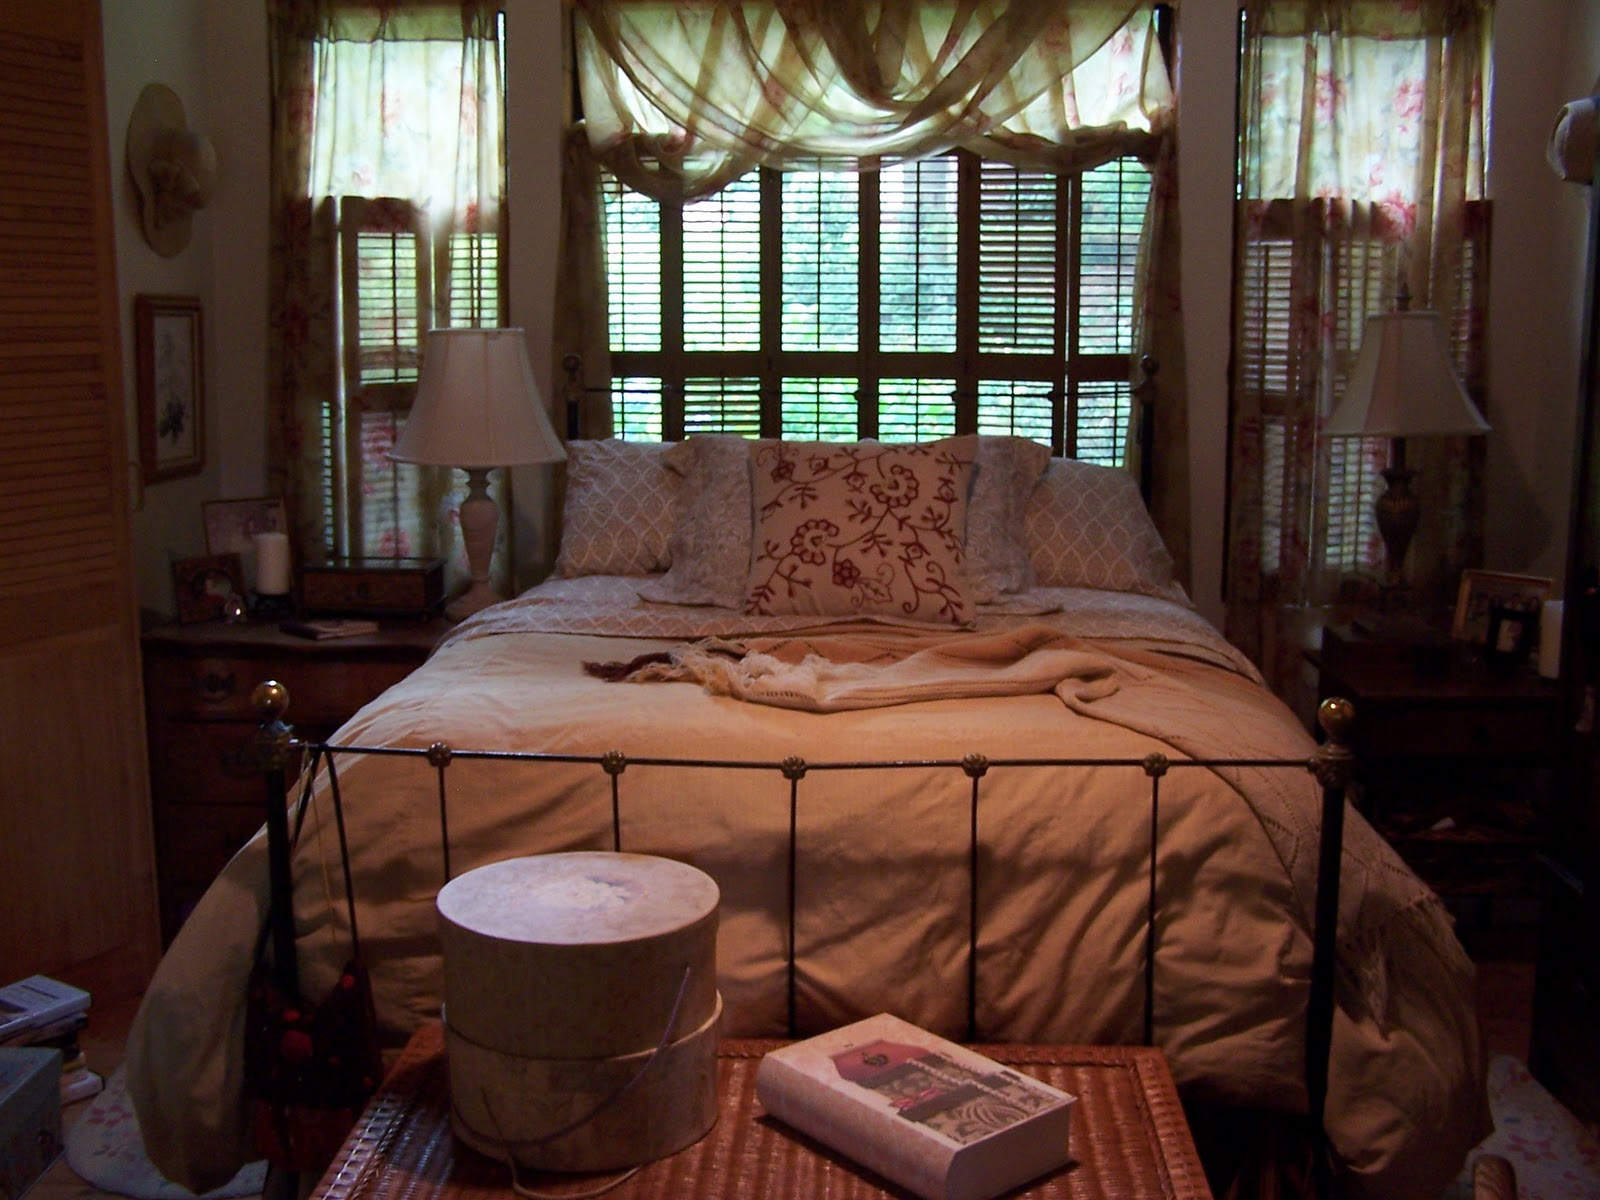 Inside Mansion Millionaire Jonah Shacknais Girlfriend Hanged Son 6 Suffered Fatal Fall as well 352052584804 further Lord And Taylor Bathing Suits besides Rug Girl Wallpaper in addition Watercolor Tropical Palm Leaves Seamless Pattern Vector Illustration 101795762. on oriental bedroom